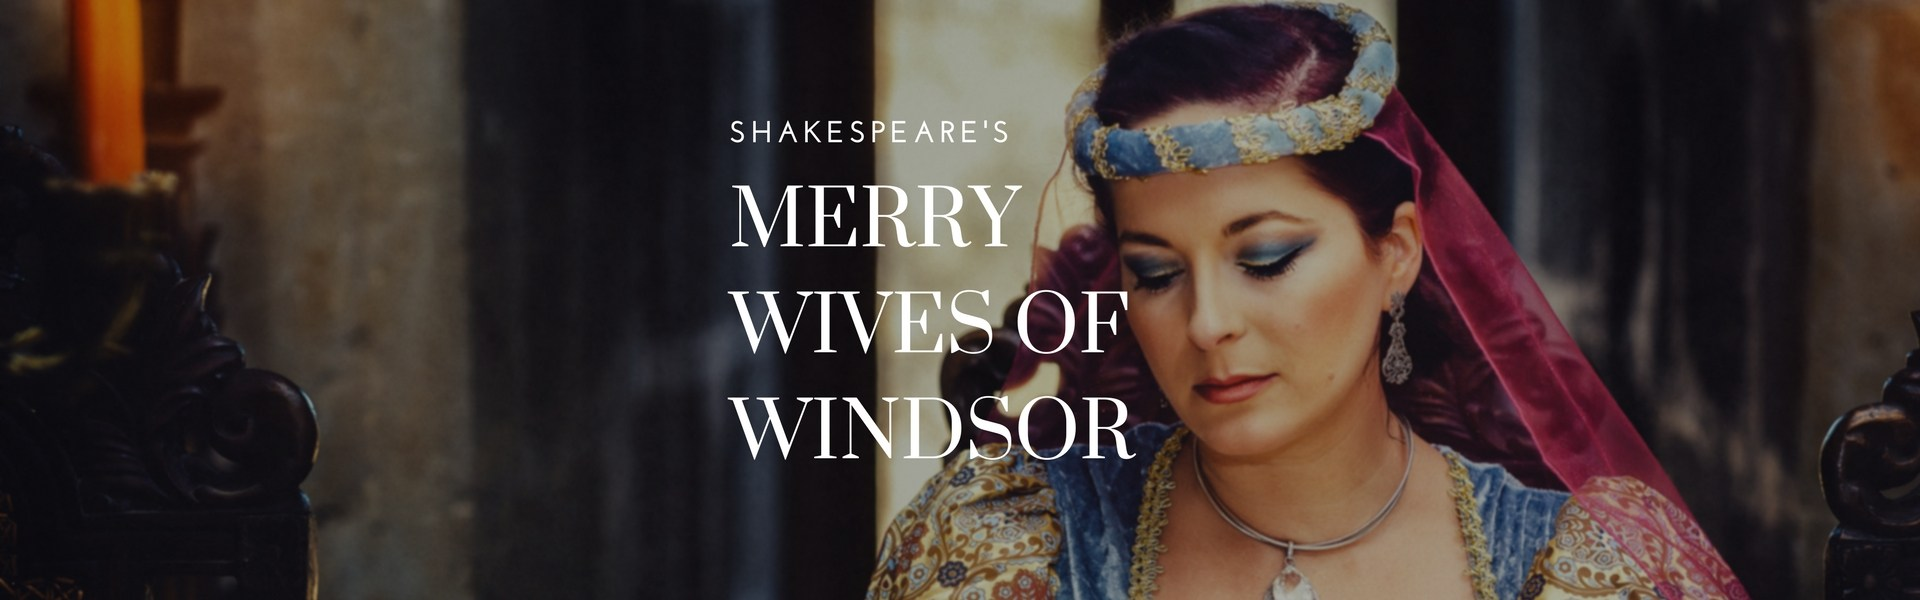 Merry Wives of Windsor at Shakespeare